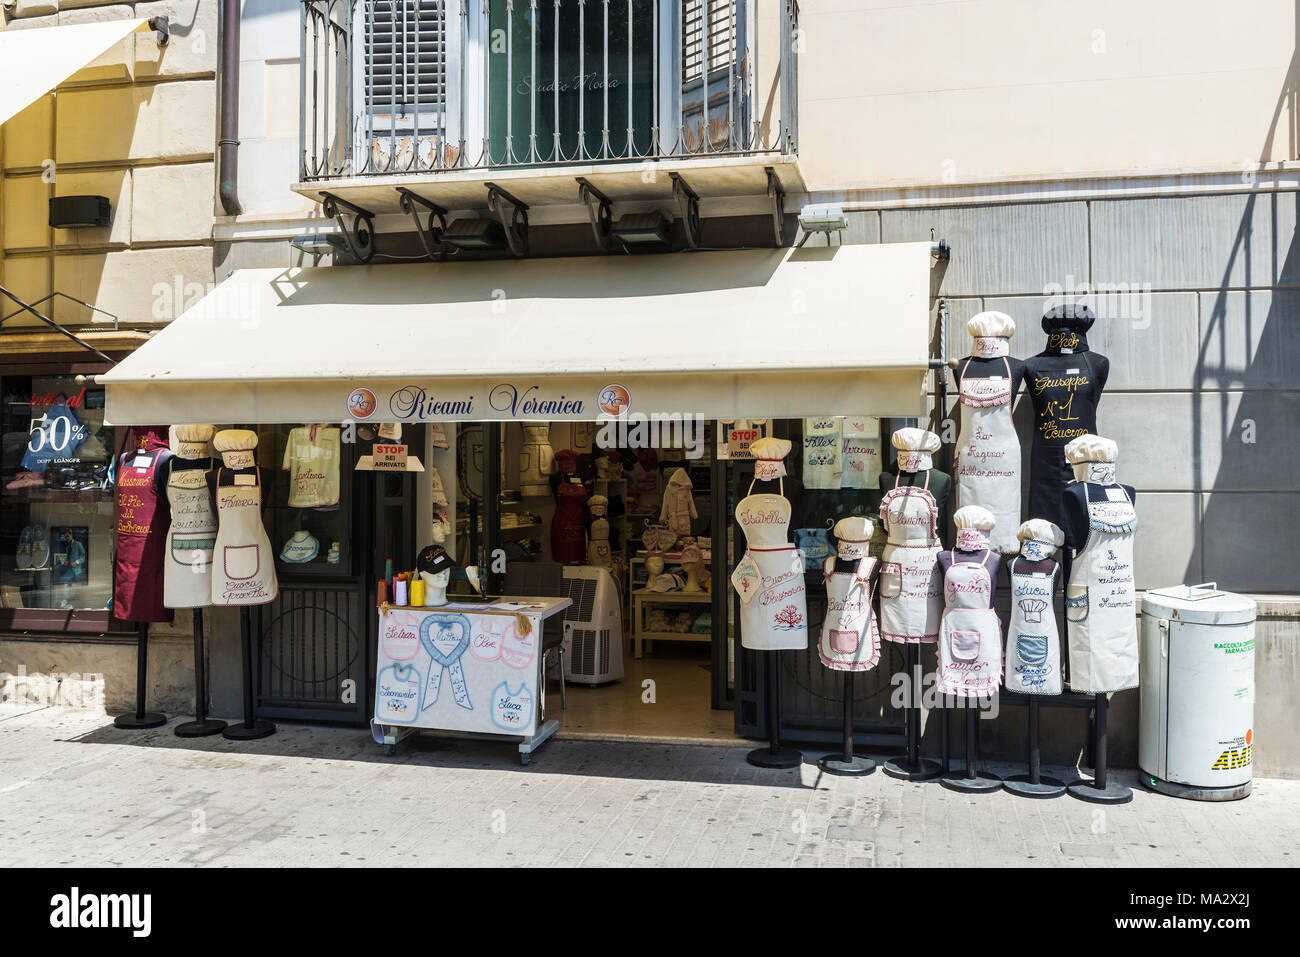 Palermo, Italy - August 10, 2017: Aprons shop of Ricami Veronica in the center of Palermo in Sicily, Italy - Stock Image